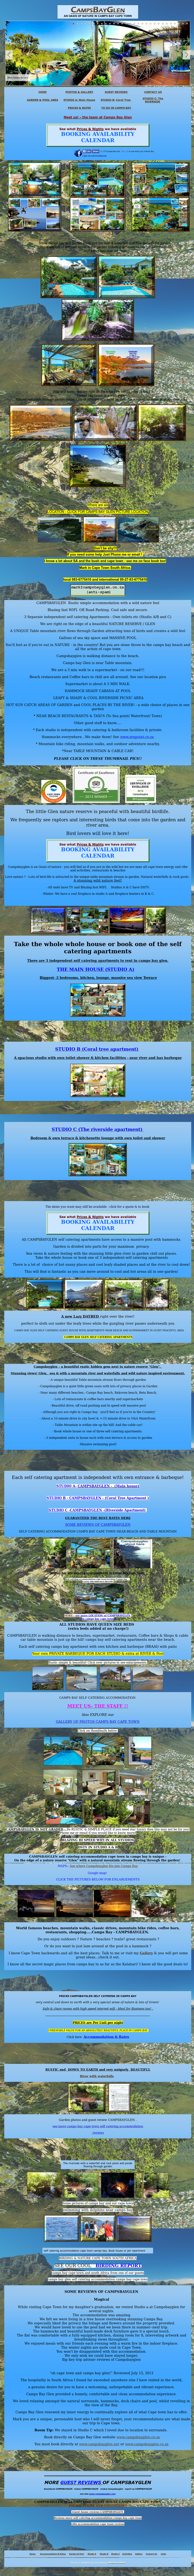 Campsbayglen - A Self Catering Rustic Nature Oasis 7 Mins From Cape ...